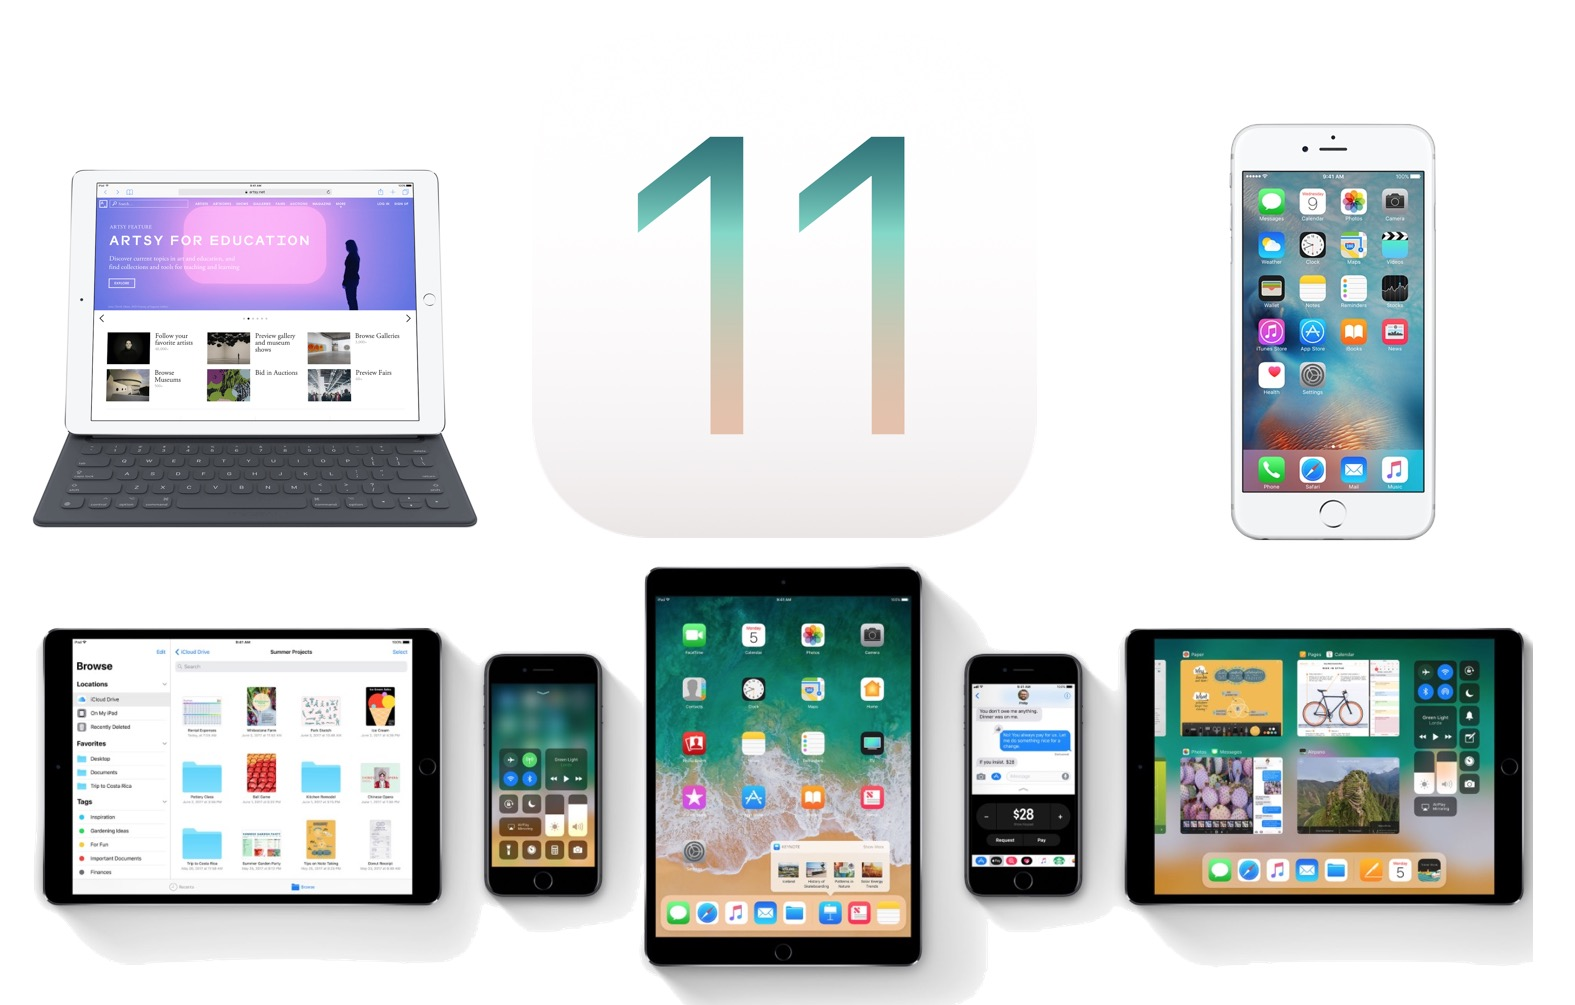 How To Update Install Ios 11 On Iphone Or Ipad Osxdaily